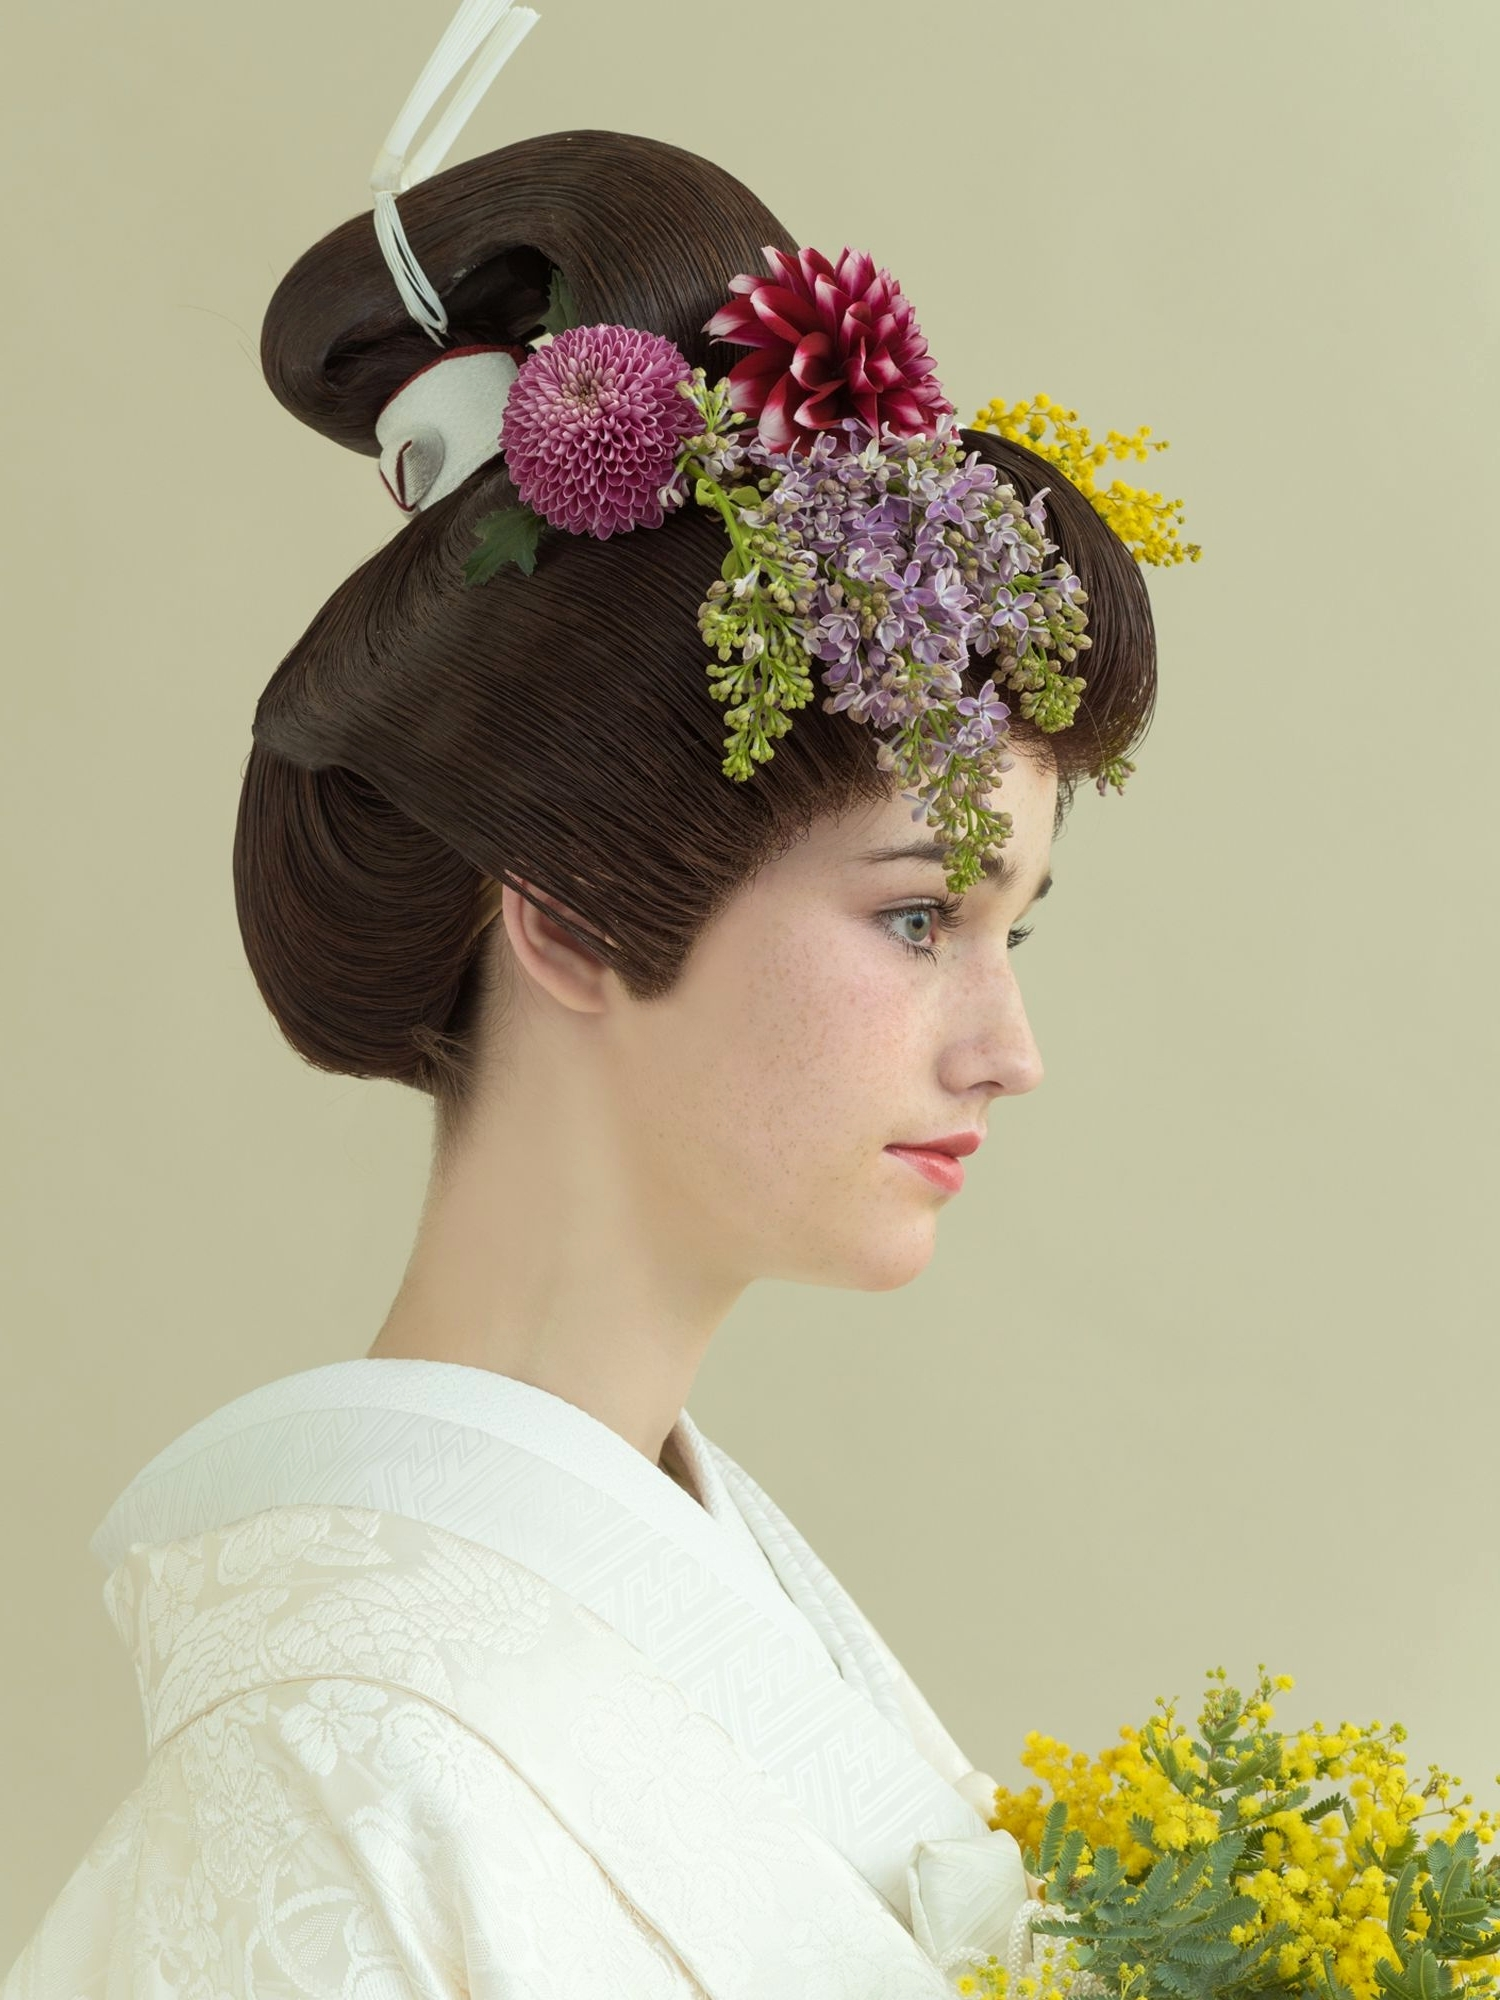 Most Recent Japanese Wedding Hairstyles In Japanese Wedding Hairstyles Sensational Å'œè£… Ç €Ç‰© ϼ Japanese (View 11 of 15)